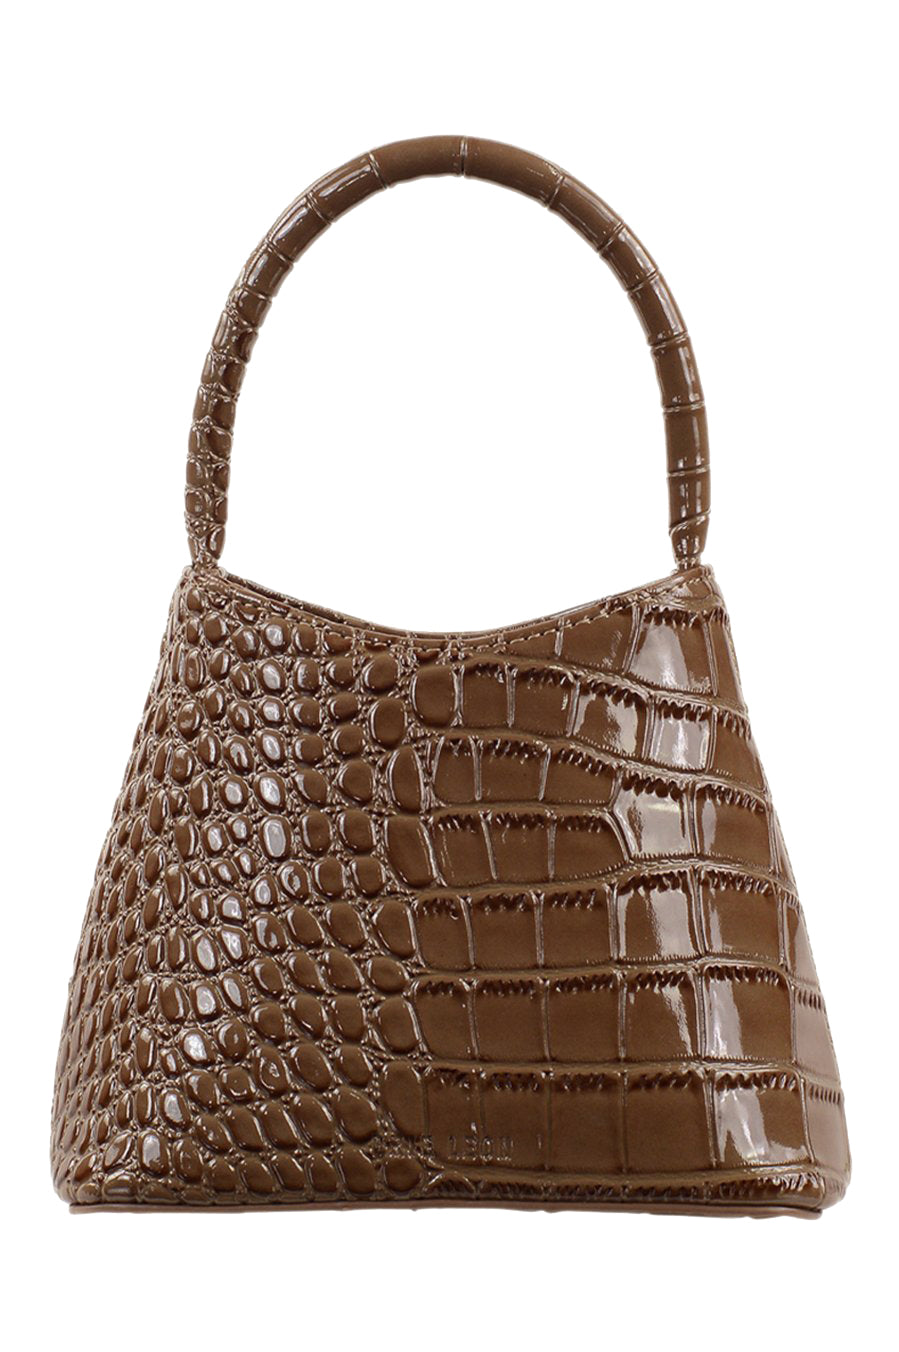 Brie Leon Mini Chloe Bag in Mocha Oily Croc